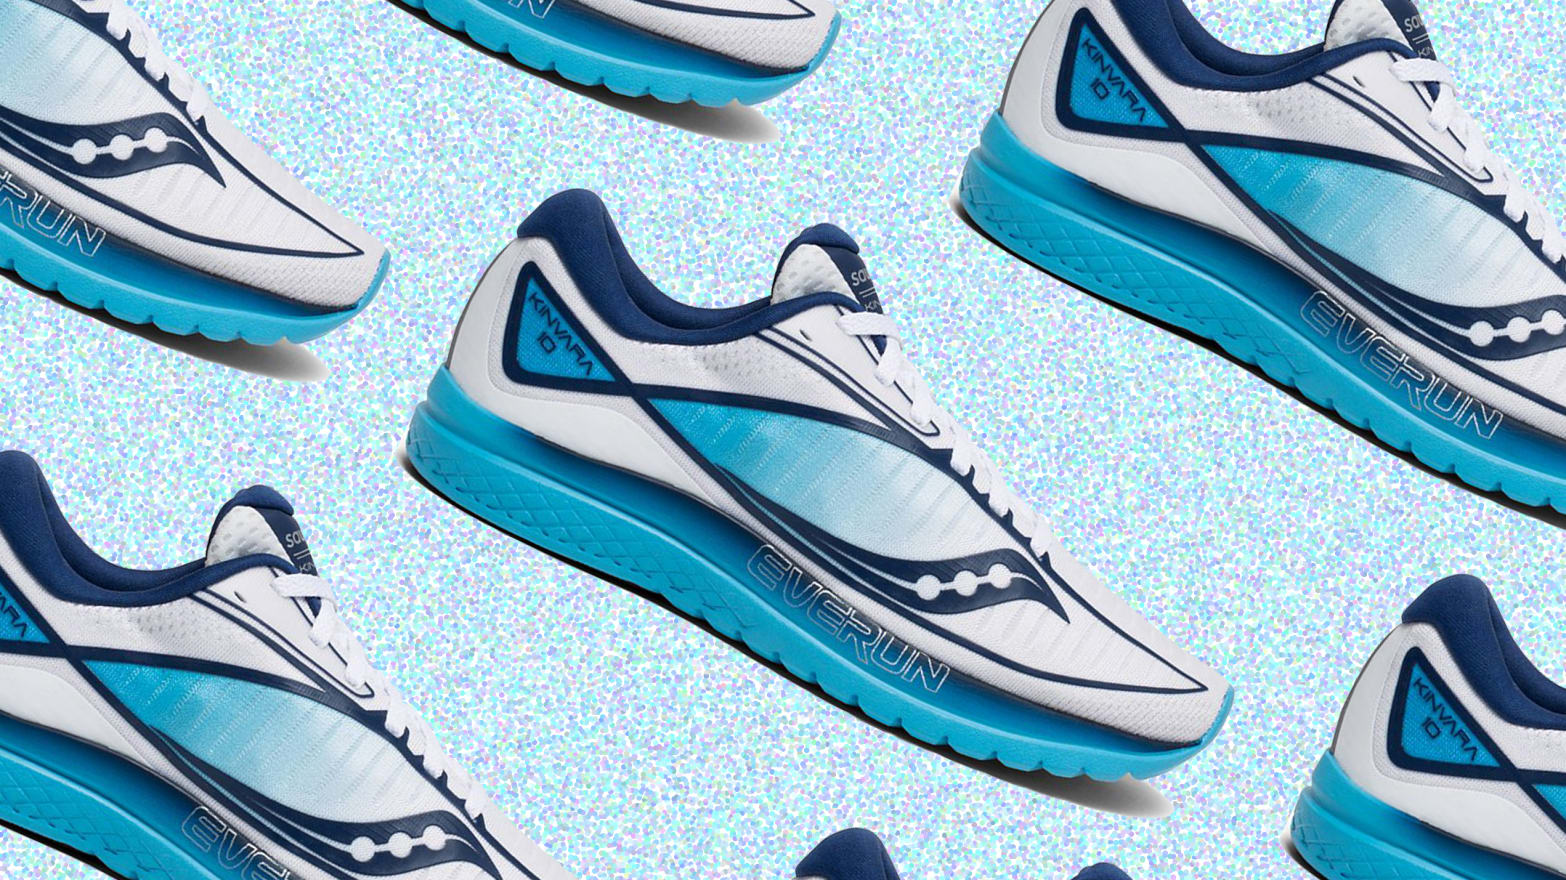 f8ef1538ca3a Saucony Releases Special Edition Kinvara 10 To Celebrate Its Anniversary